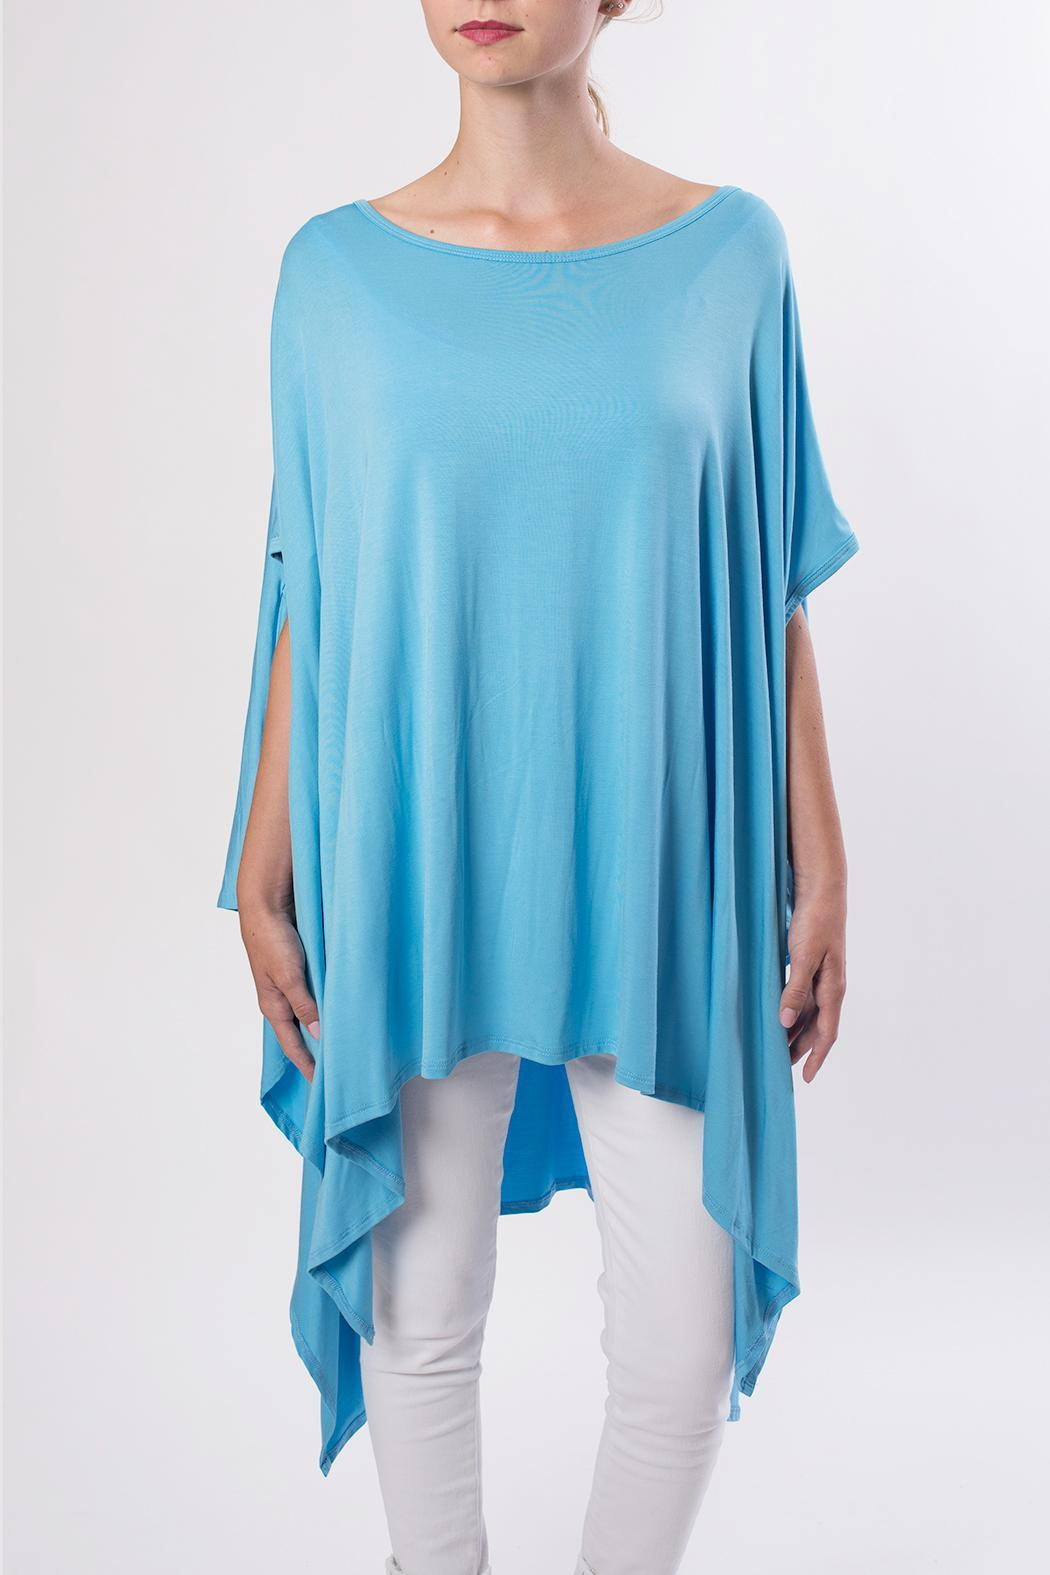 143 Story Blue Flowy Tee - Front Cropped Image